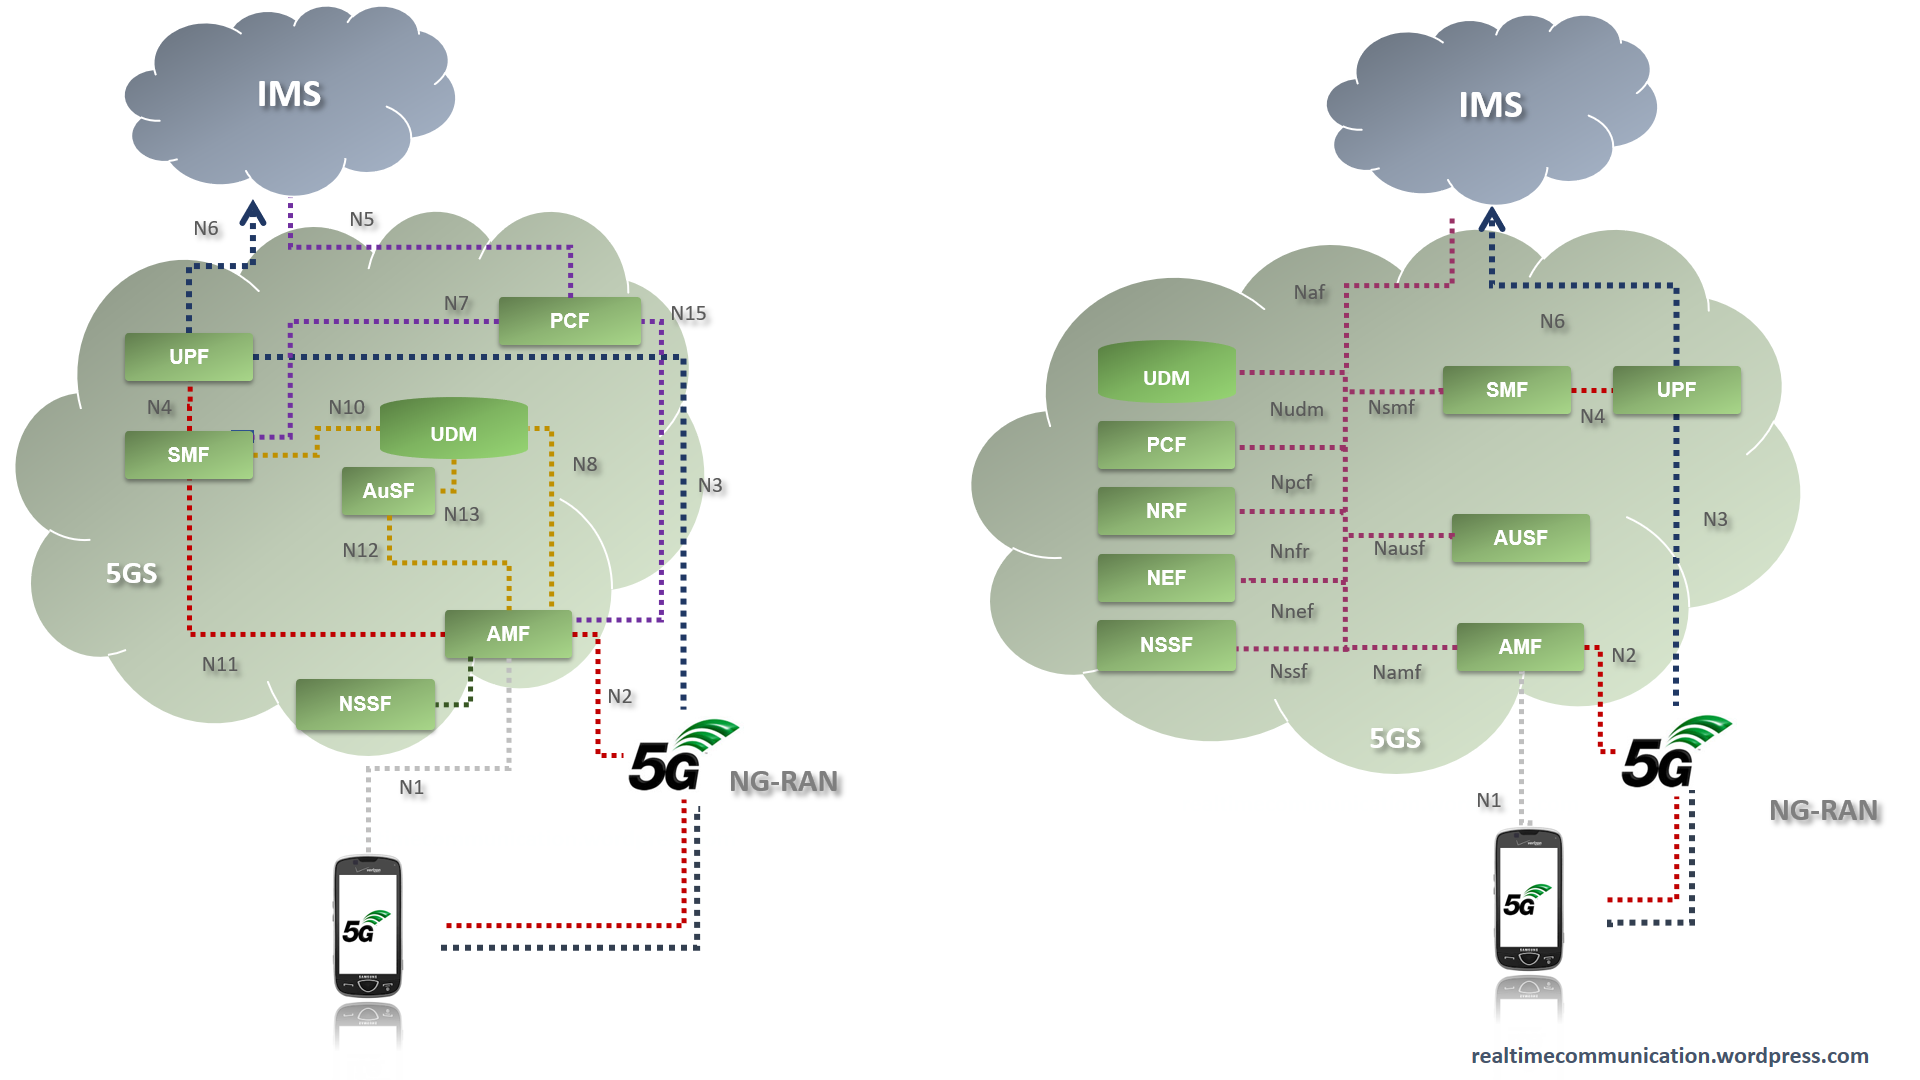 Ims and 5g real time communication for 5g network architecture